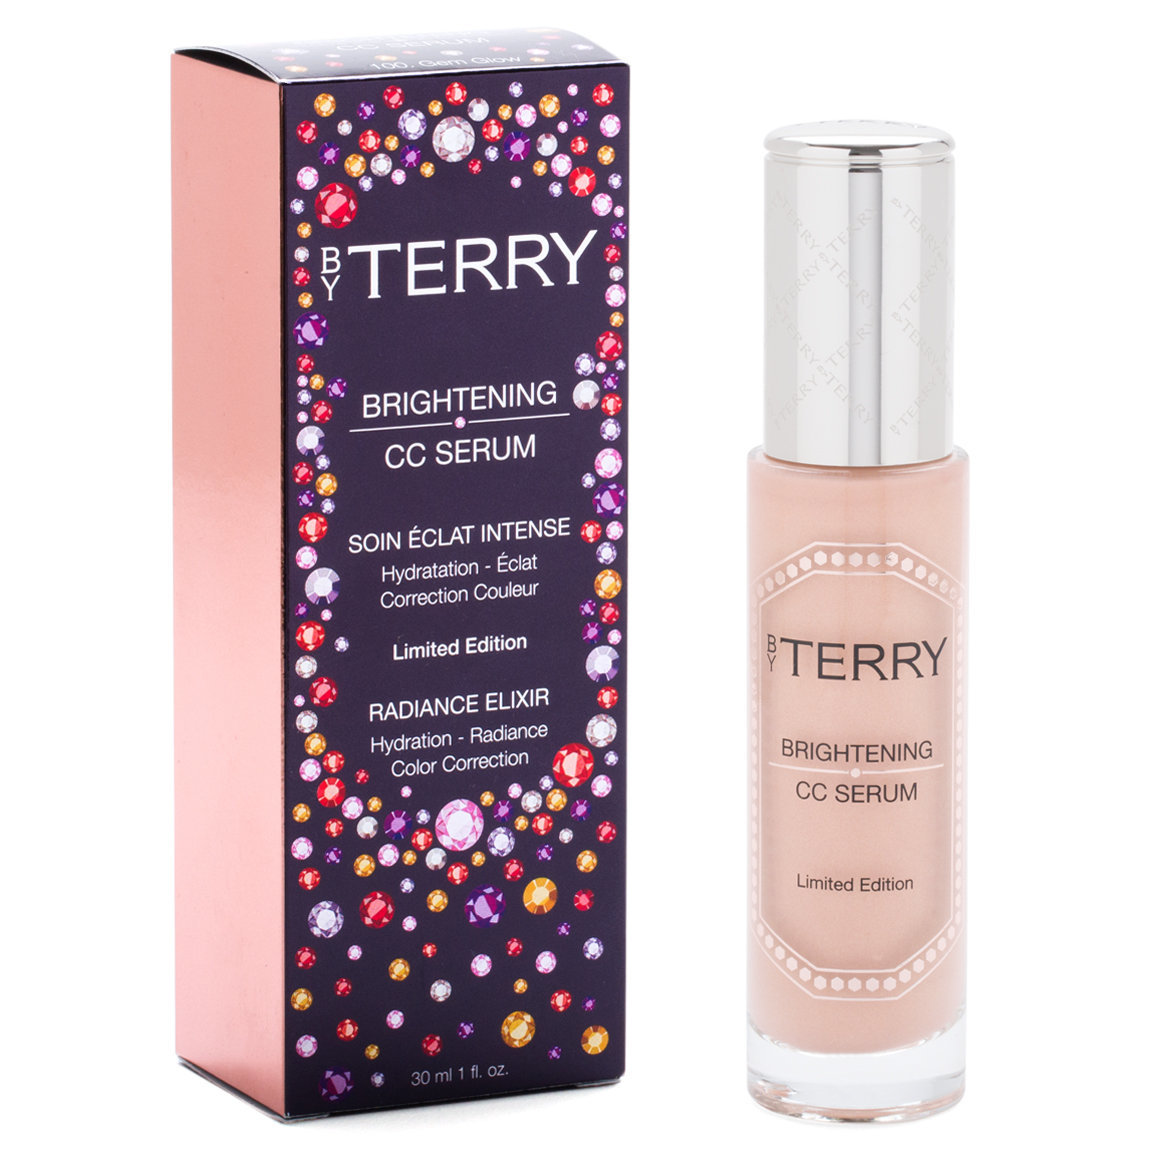 BY TERRY Gem Glow Brightening CC Serum product smear.